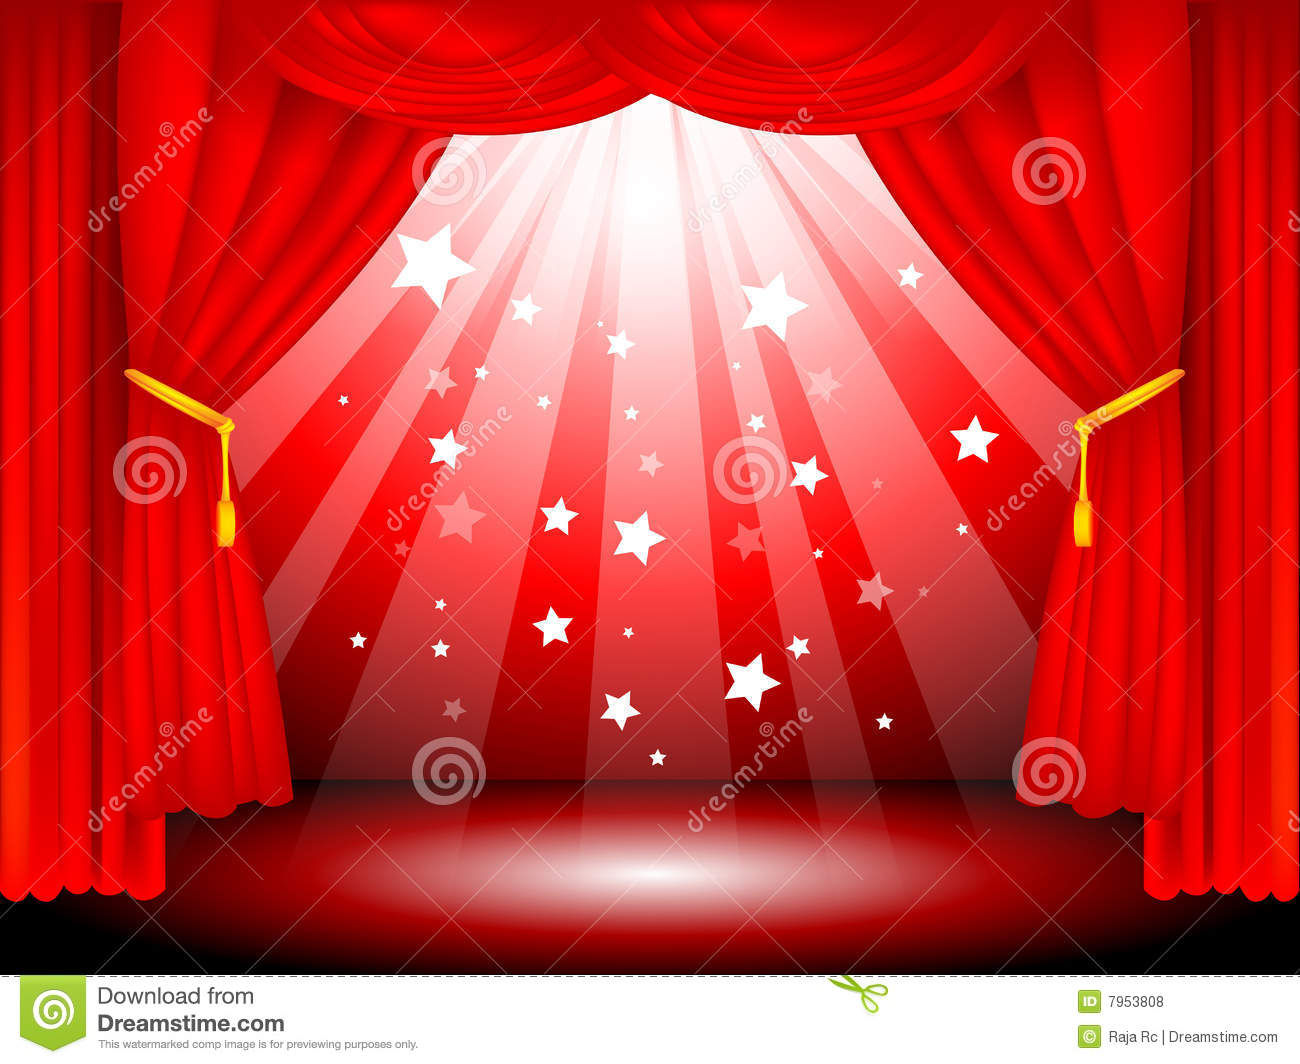 Image Result For Theatre Curtains Animation